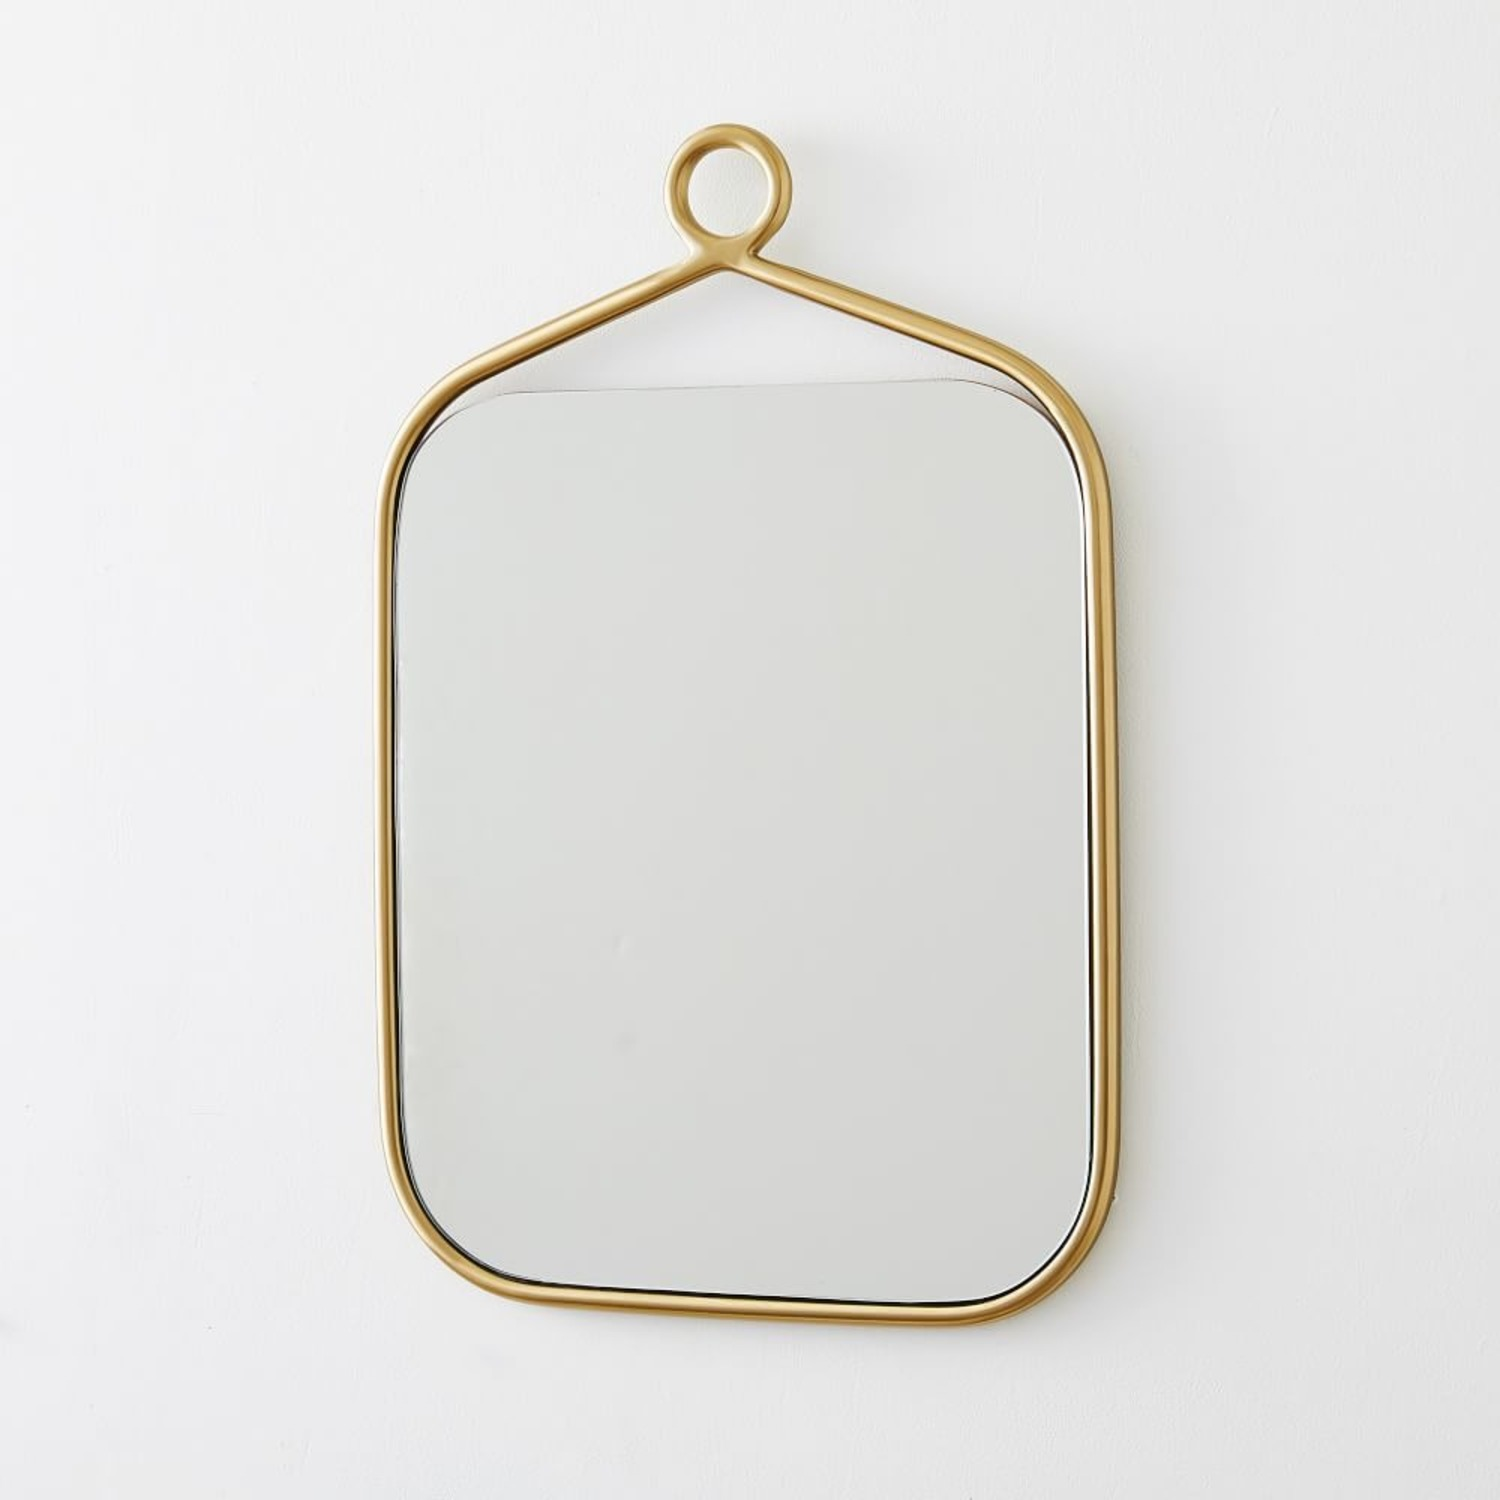 West Elm Decorative Loop Framed Metal Mirror - image-1